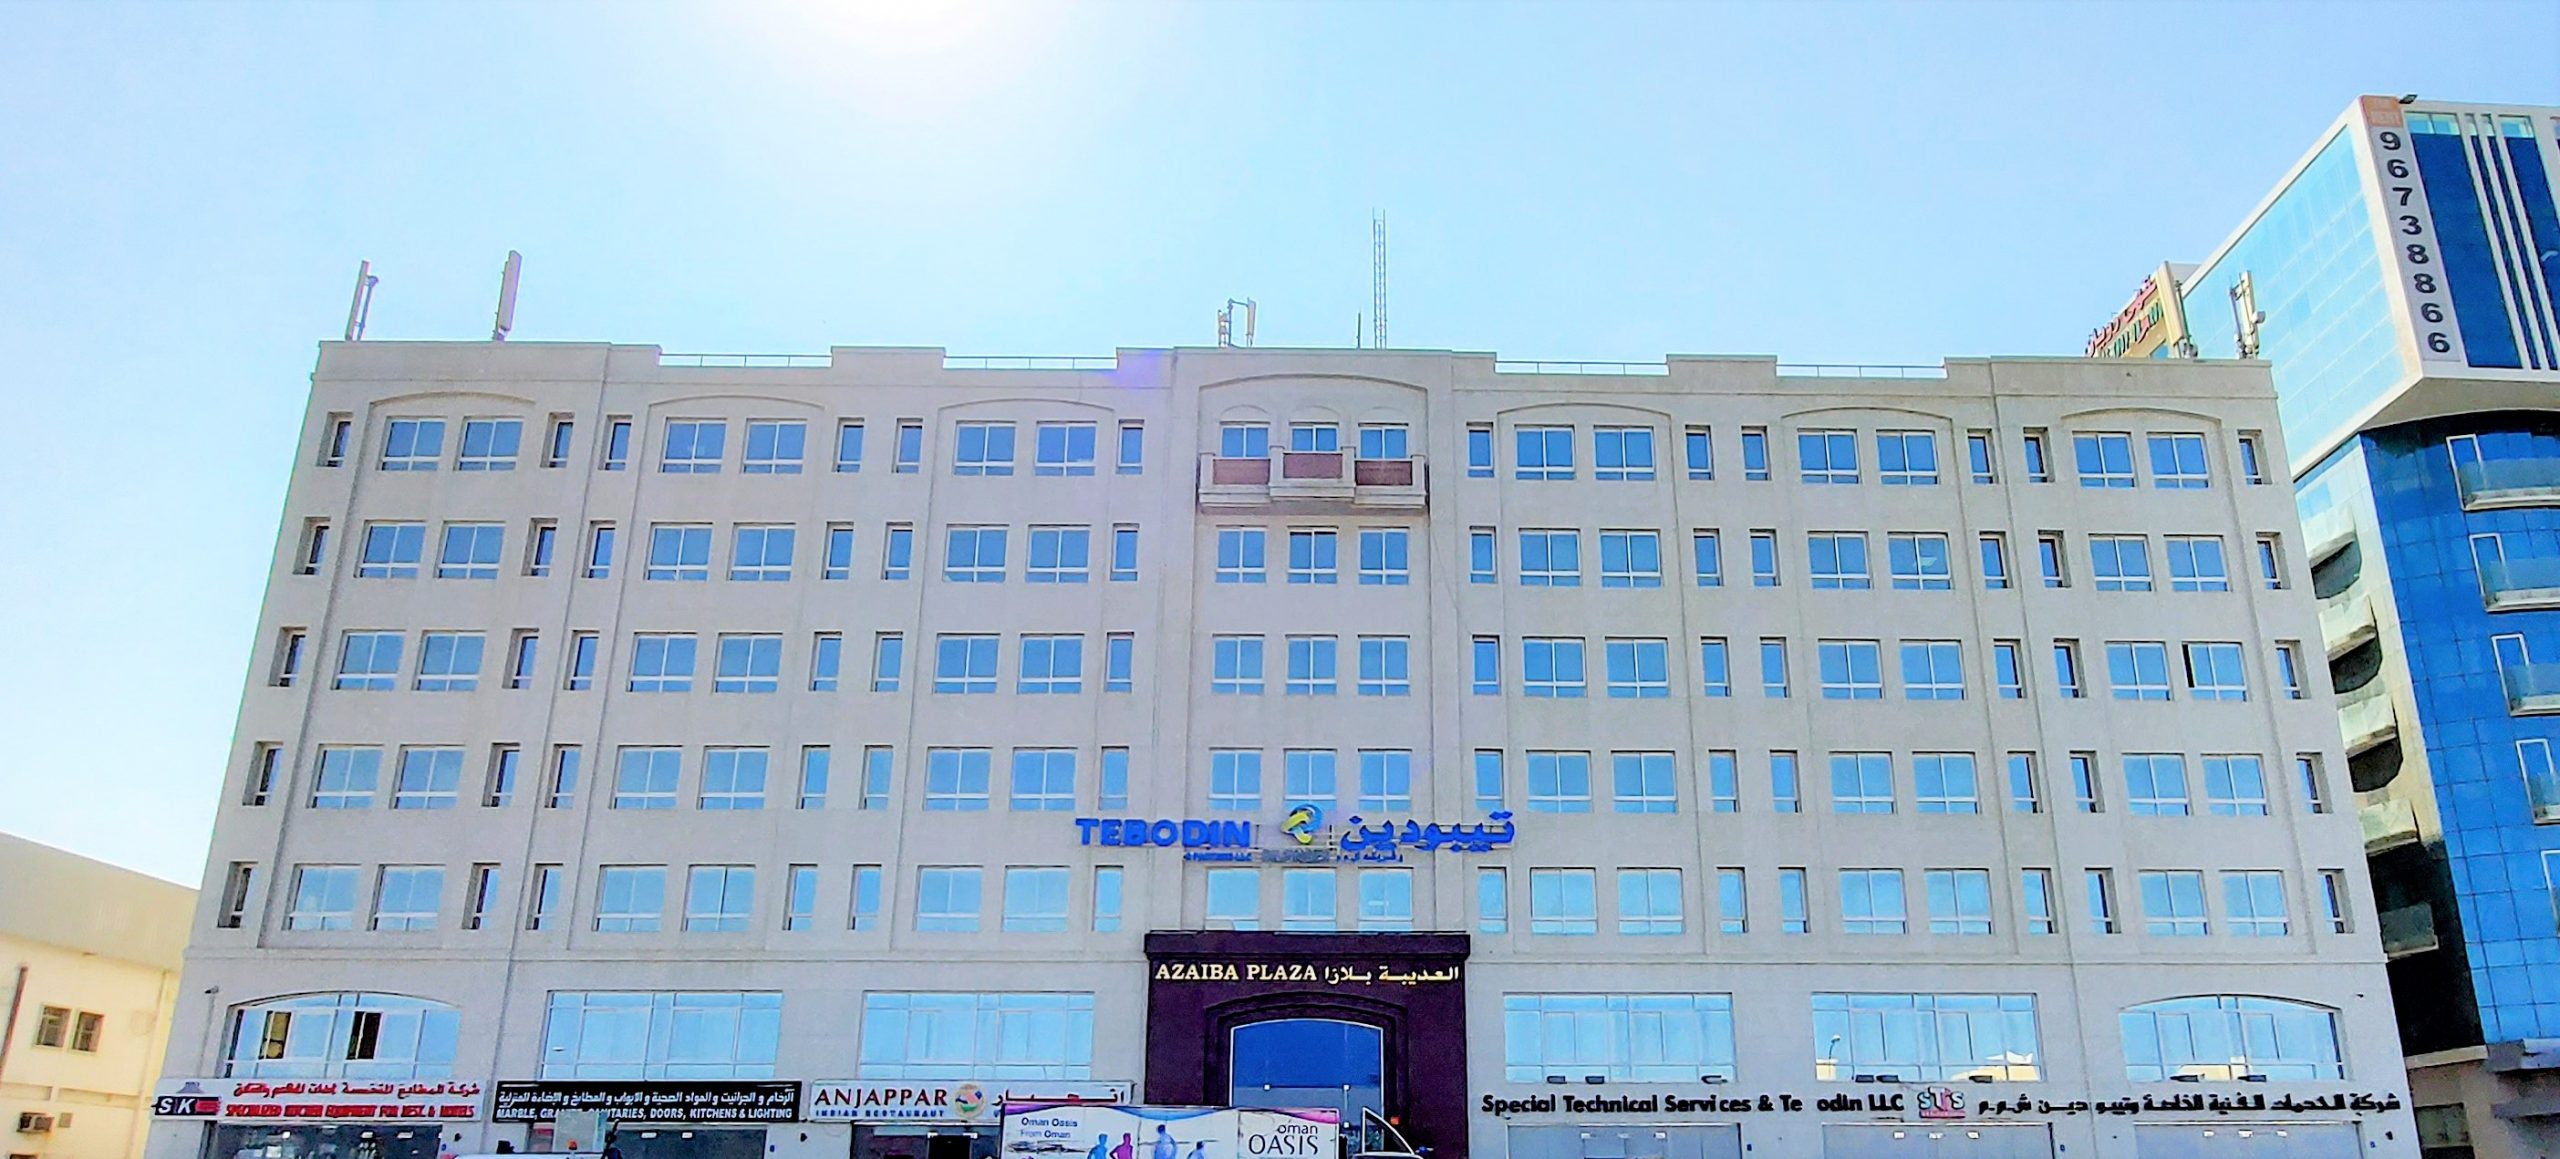 """You are currently viewing Azaiba Plaza<br><span class=""""headlin"""">Al Azaiba, Muscat,Oman</span><br><span class=""""headlin2"""">Category: Office Space – For Rent</span>"""